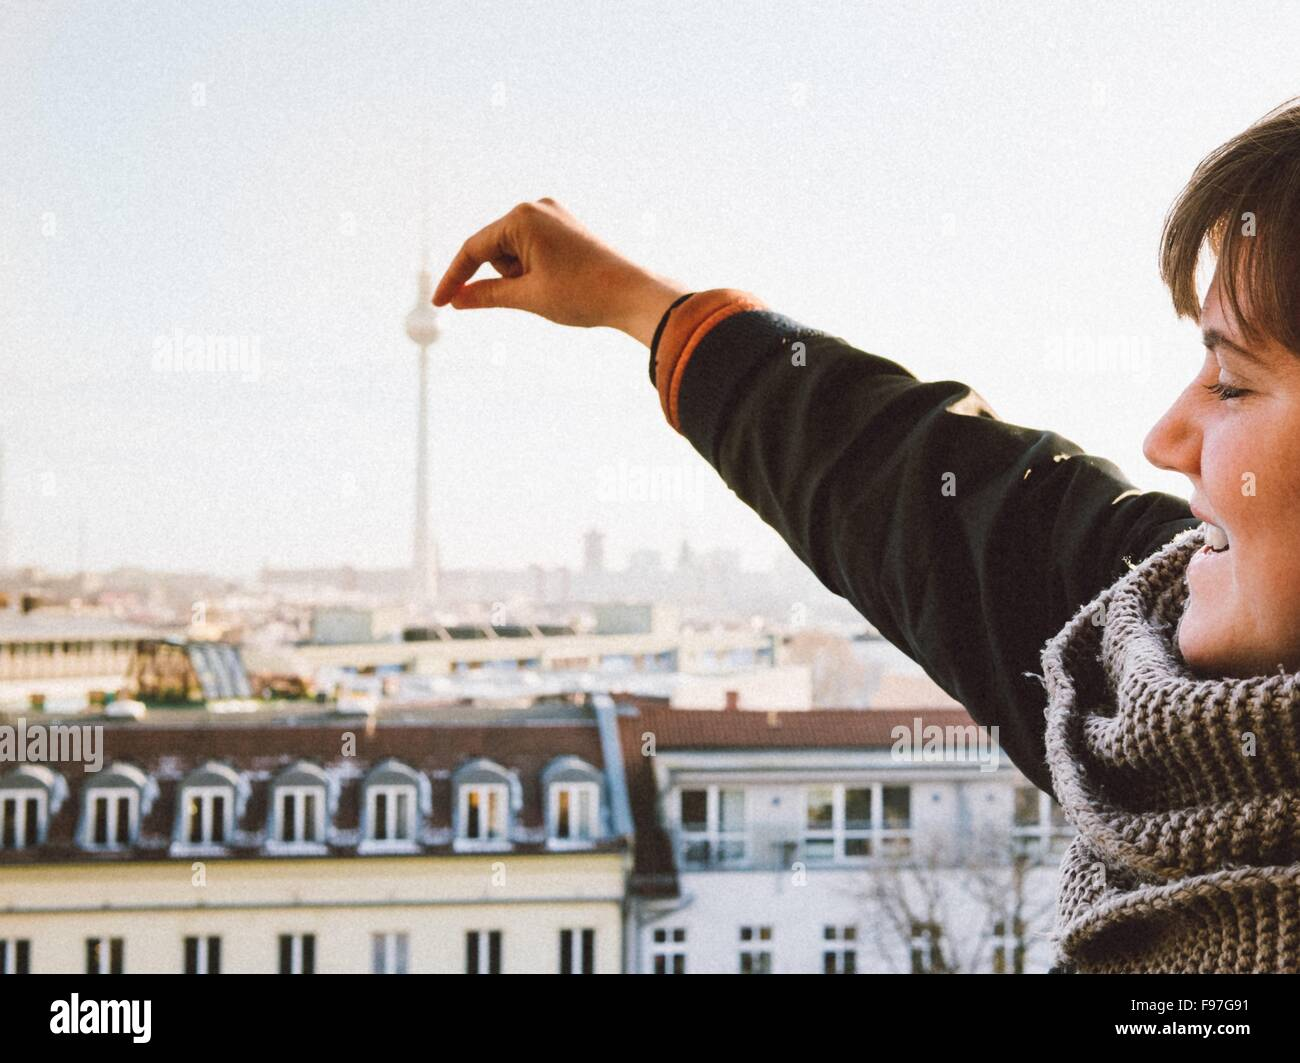 Optical Illusion Of Smiling Woman Touching Fernsehturm Tower Against Clear Sky - Stock Image